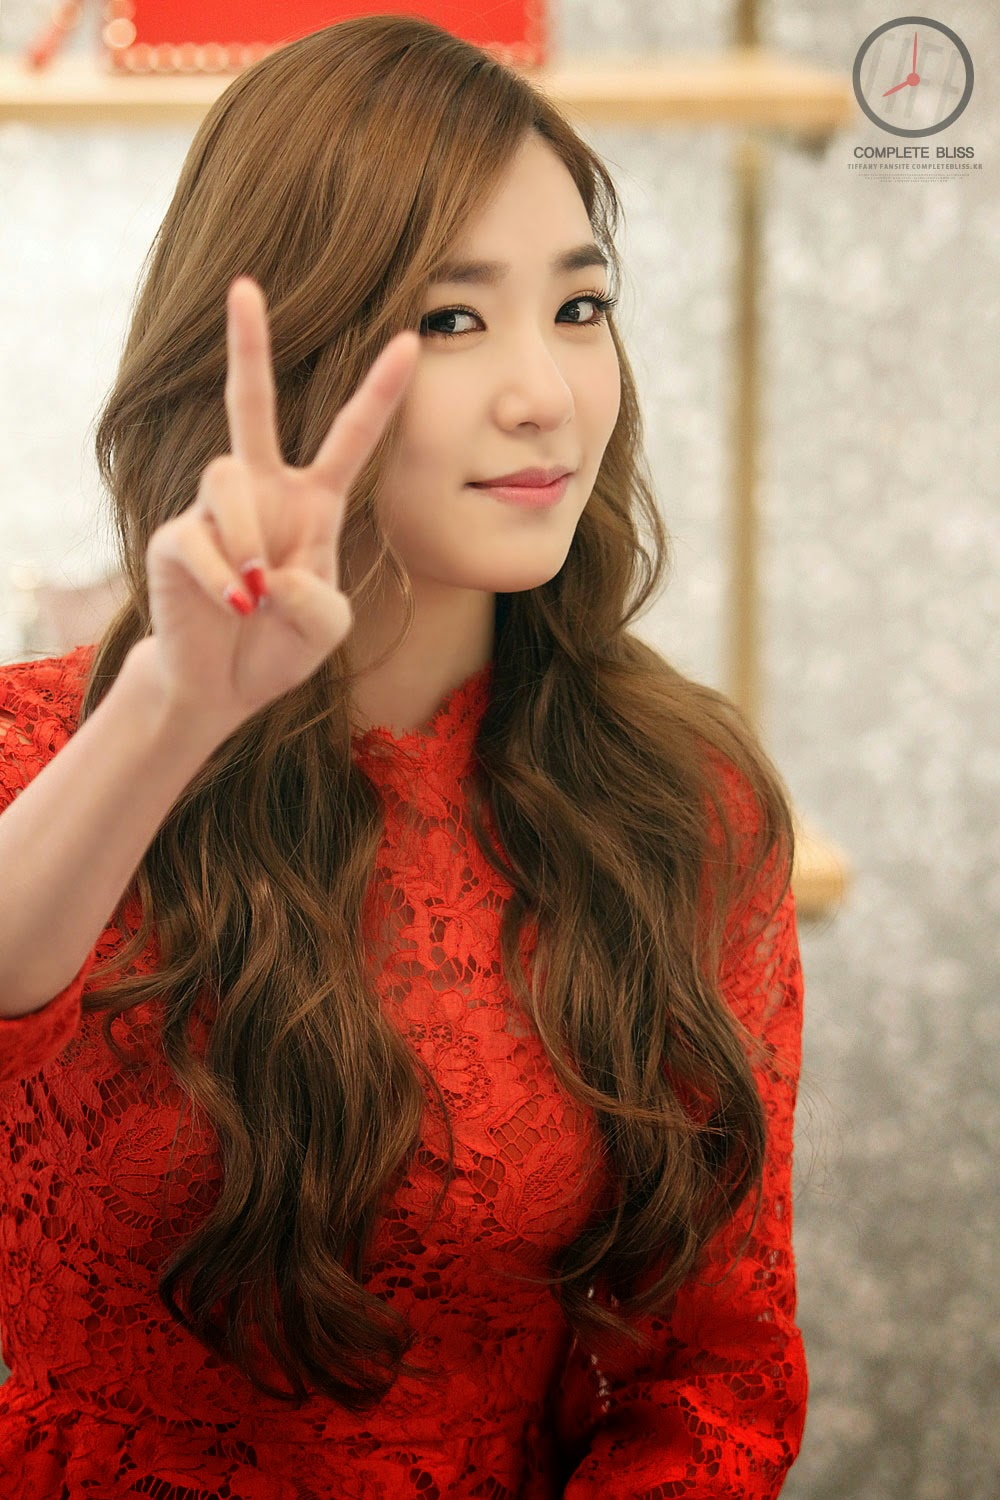 Tiffany Hwang Cute with Red Dress | Korean HD Girls